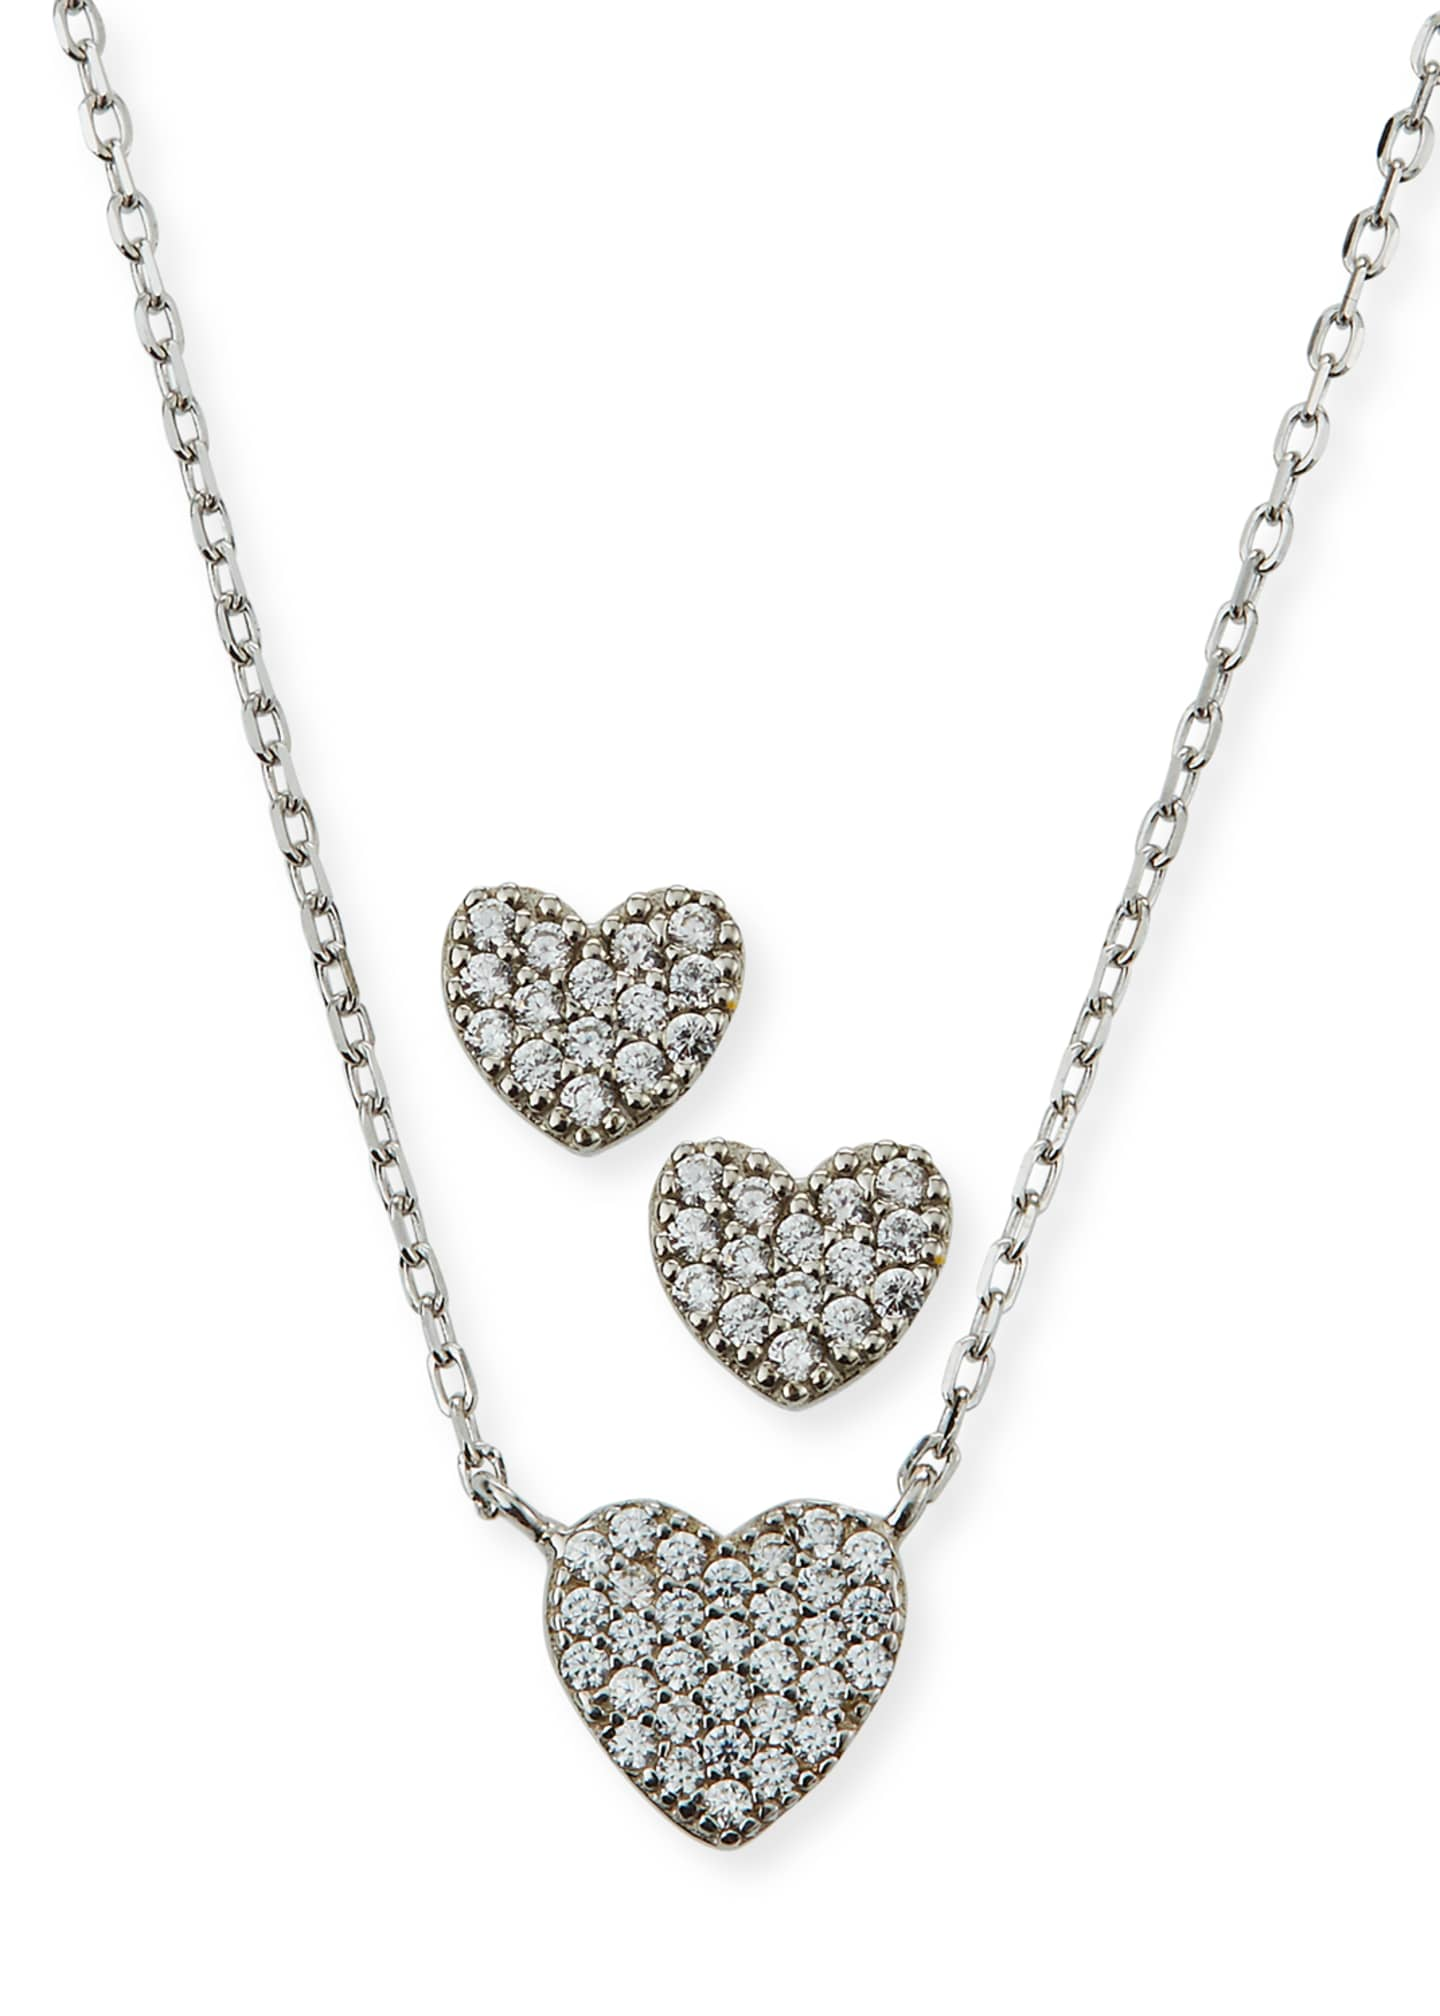 Helena Girl's Pave Heart Necklace w/ Matching Stud